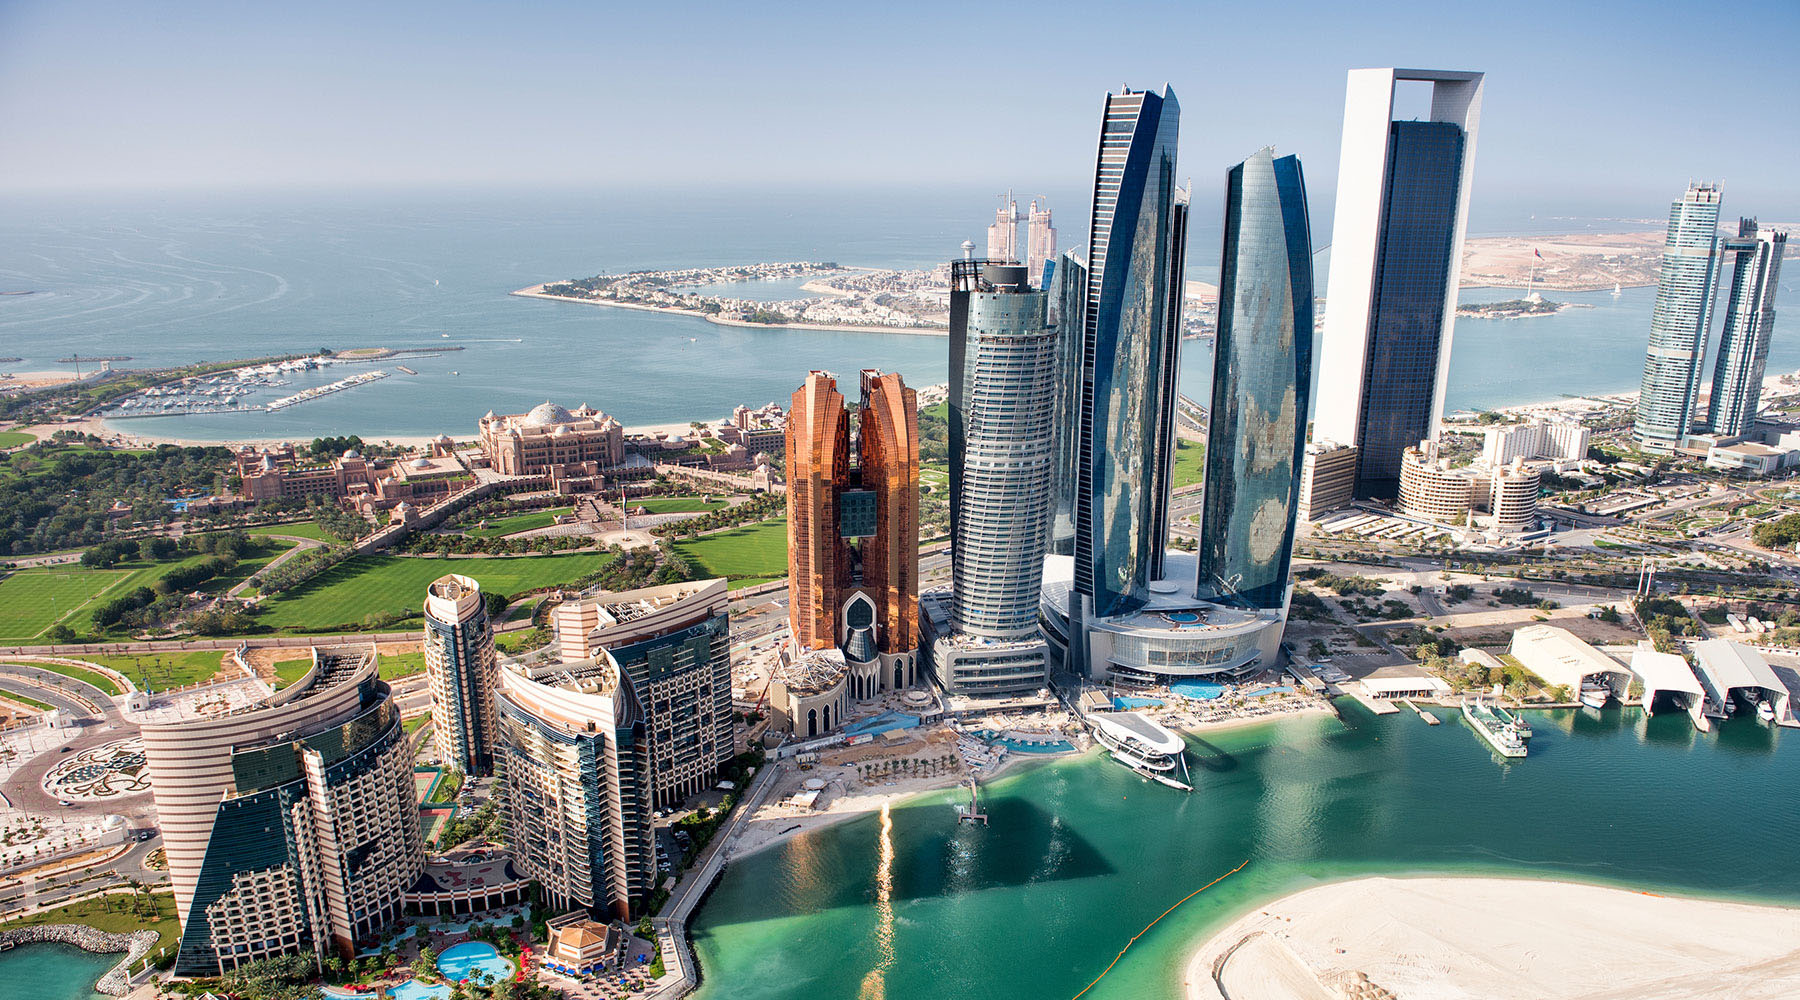 11-NIGHT ARABIAN GULF & EMIRATES VOYAGE